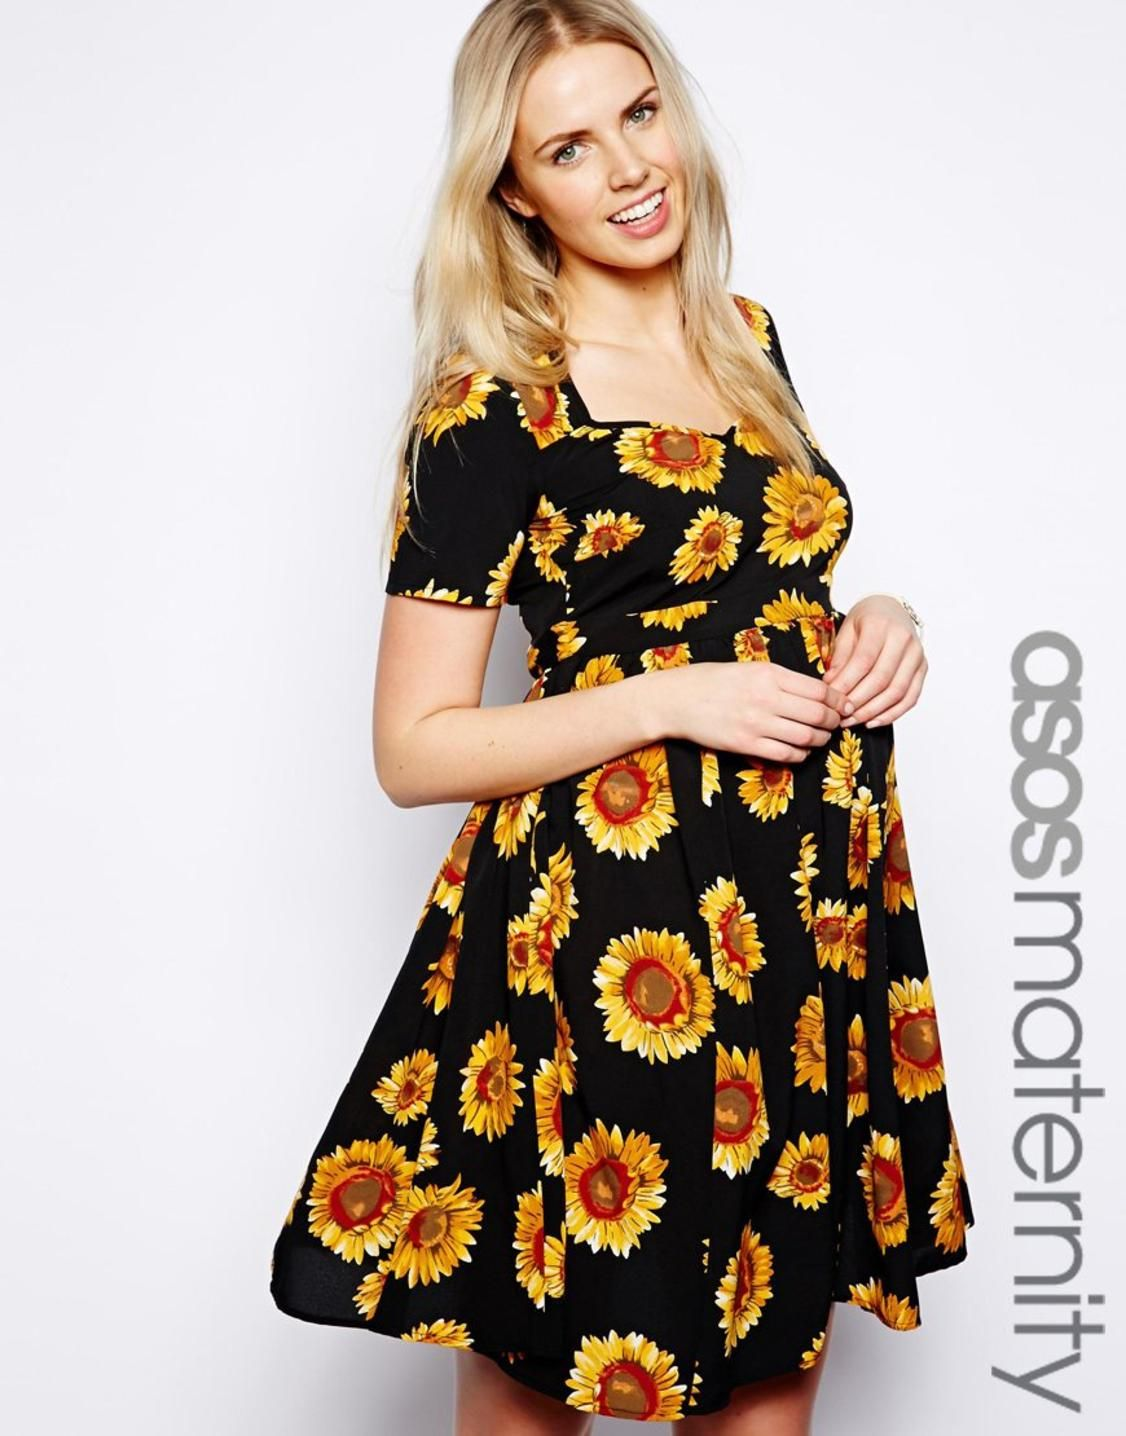 70abb7684b0d ASOS Maternity Exclusive Skater Dress In Sunflower Print http://picvpic.com/